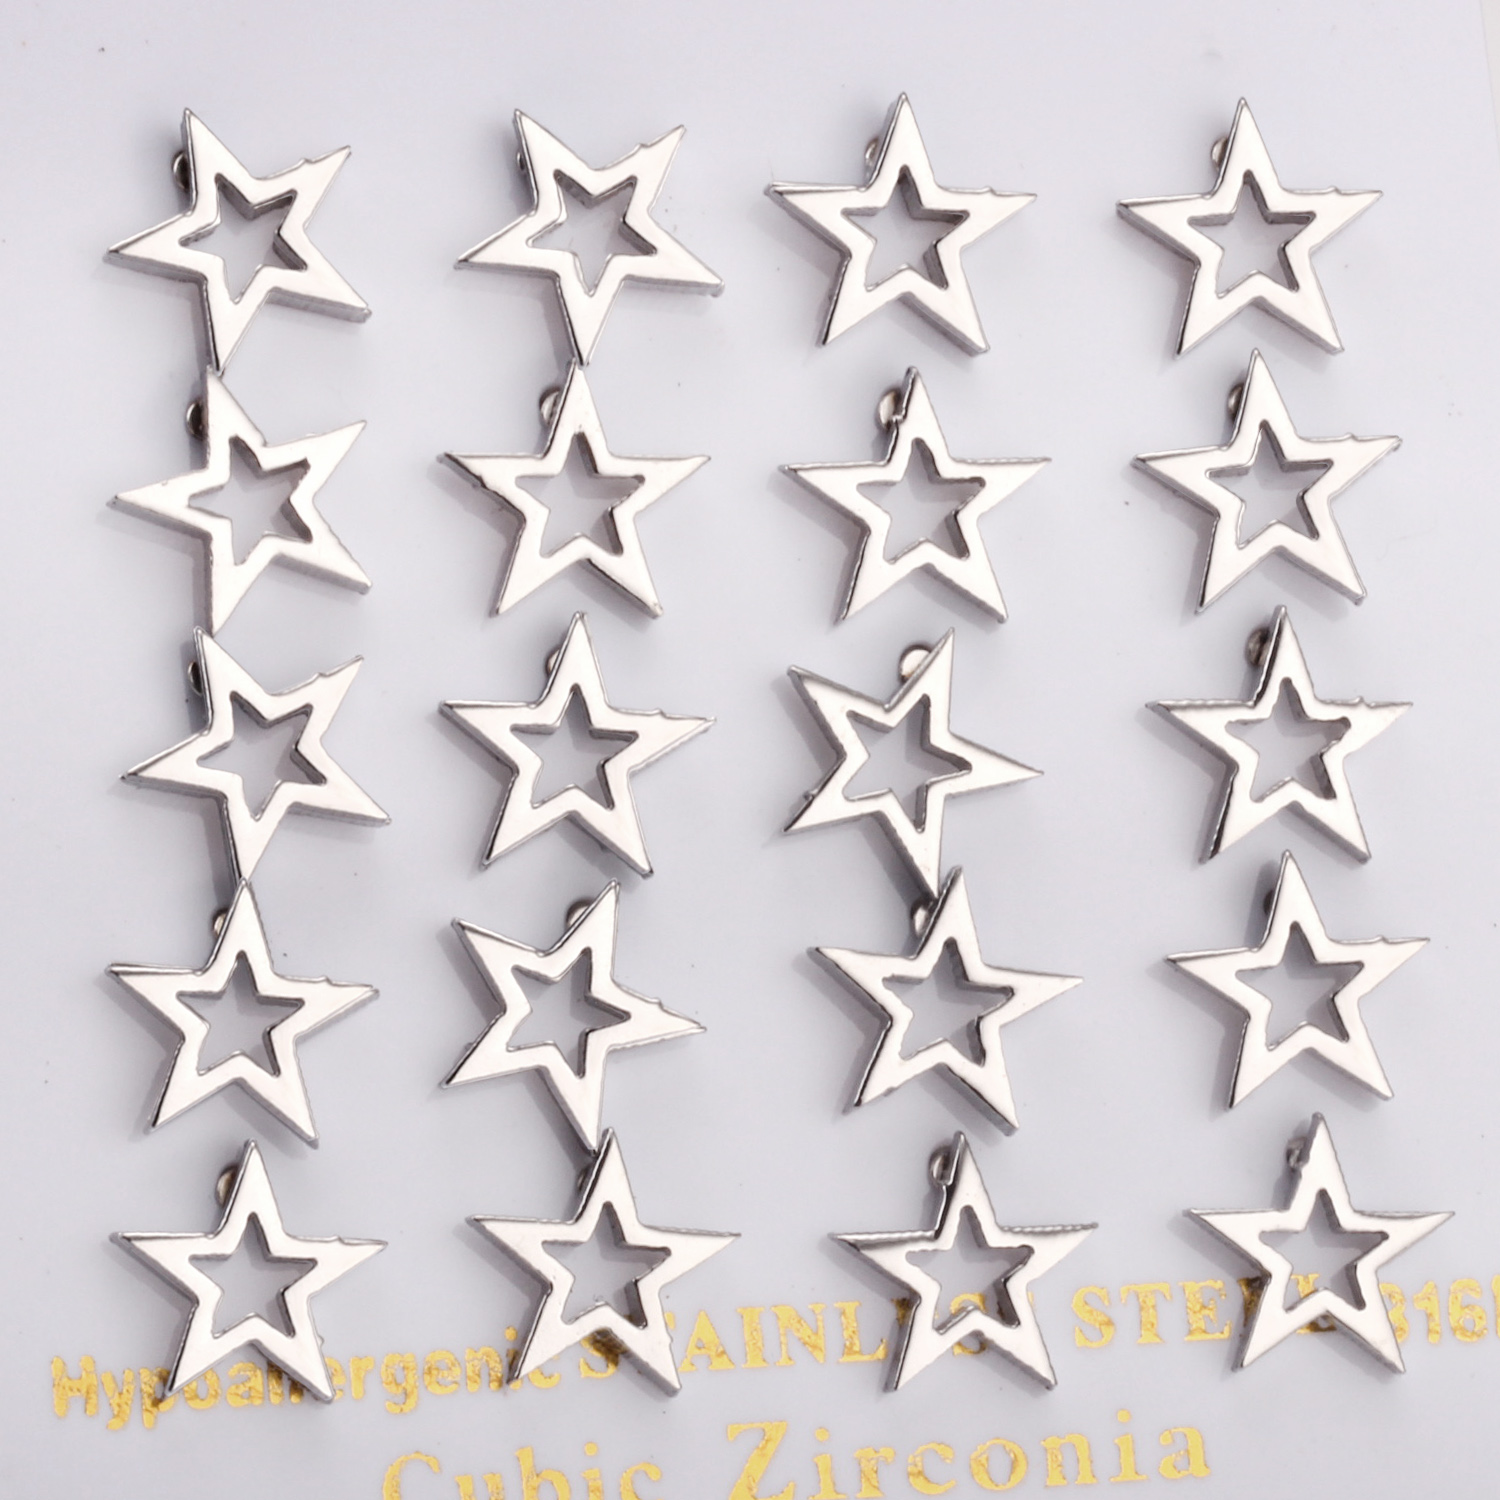 High Quality Star With Froste Stainless Steel Stud Earrings For Men And Women, Gold And Steel